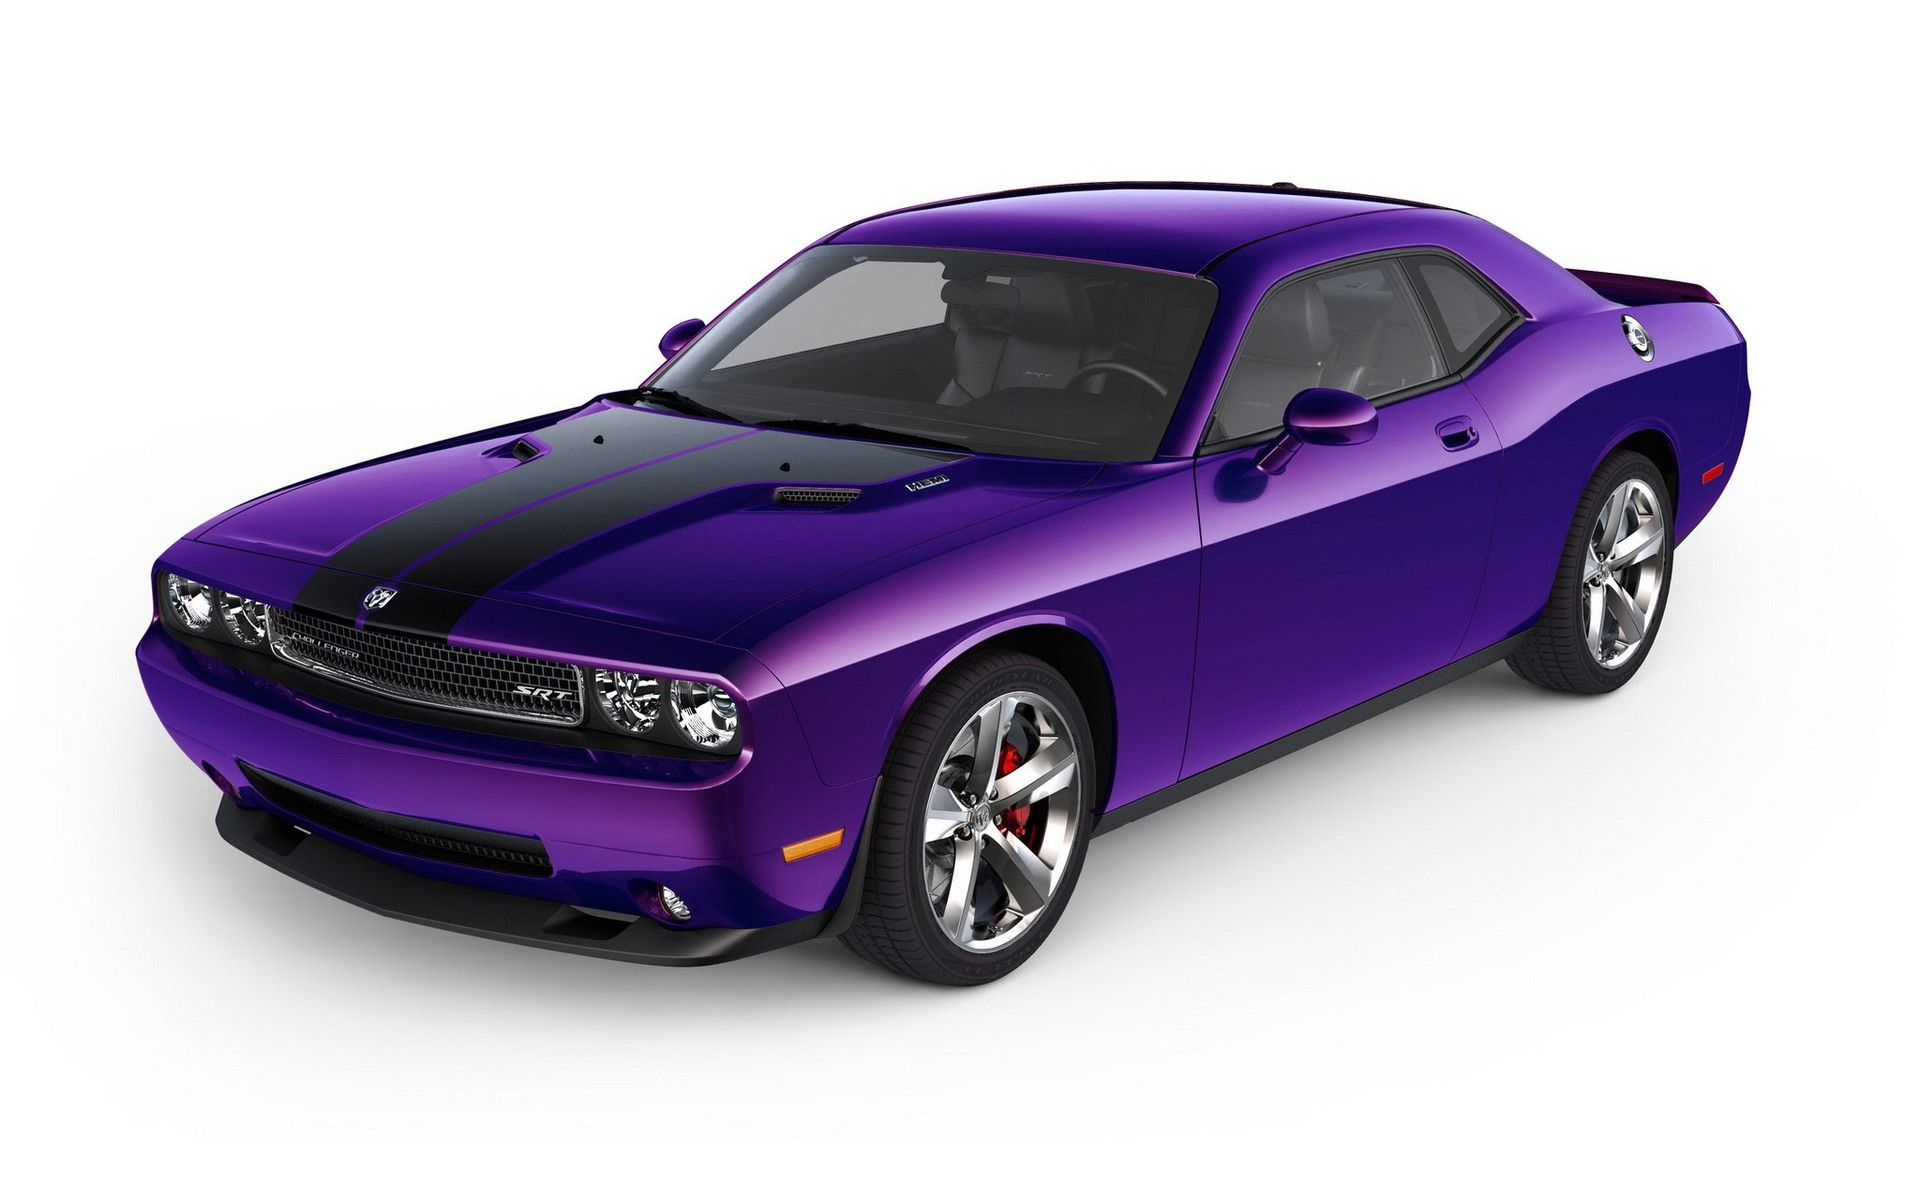 dodge challenger purple supercars wallpaper 1100. Cars Review. Best American Auto & Cars Review